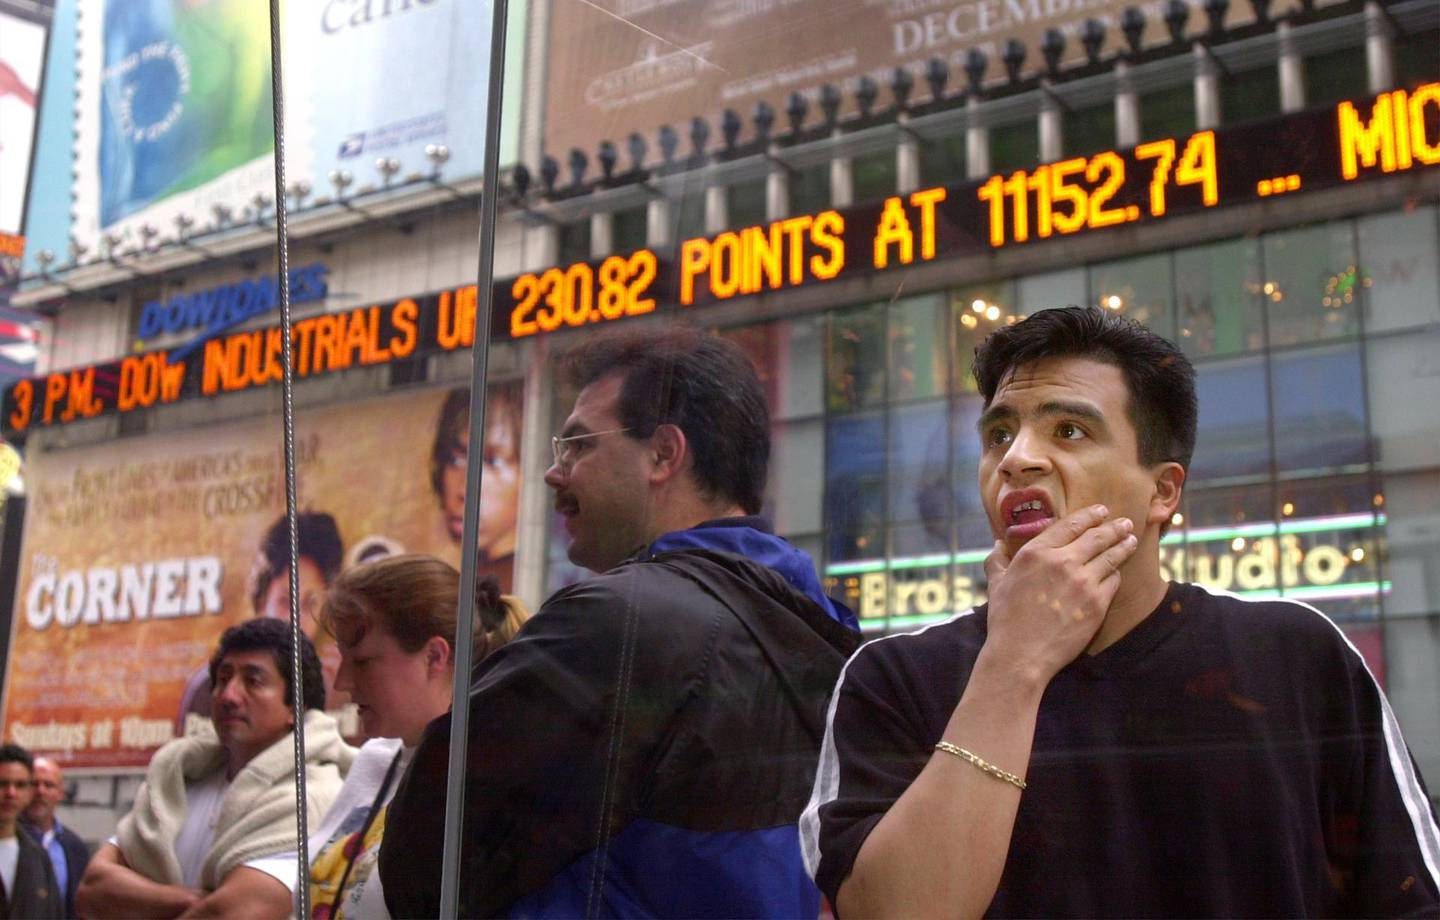 N366994 05: A passer-by looks over the prices on the Nasdaq board in Times Square in New York, April 3, 2000. The Nasdaq plummeted 349 points to 4225.25 Monday, the fifth-biggest one-day loss in percentage terms in its history. Microsoft shares plummeted on news that attempts to settle the U.S. federal government's antitrust lawsuit broke down over the weekend. (Photo by Chris Hondros)